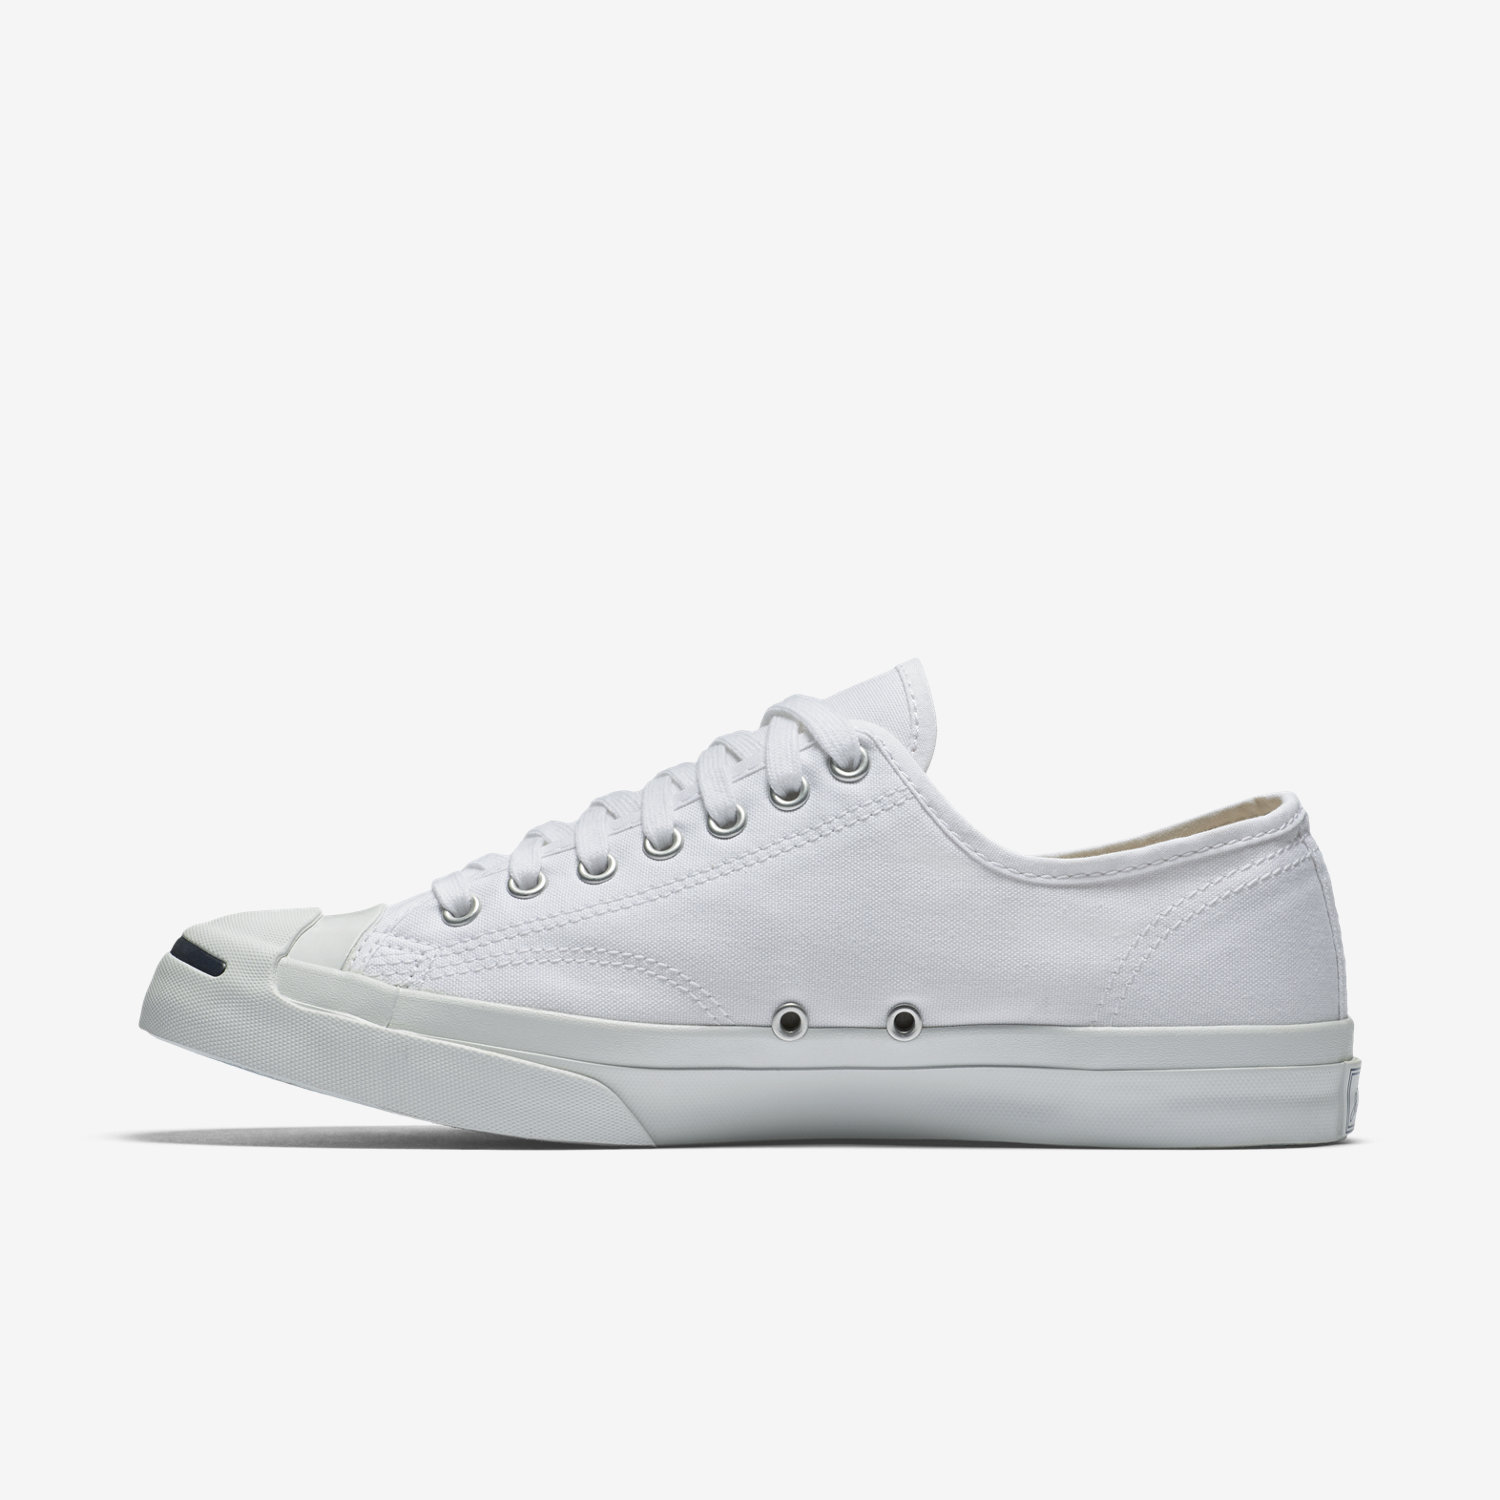 7d30a8409a27 ... promo code for converse jack purcell classic low top unisex shoe. nike  fb1c1 e9d85